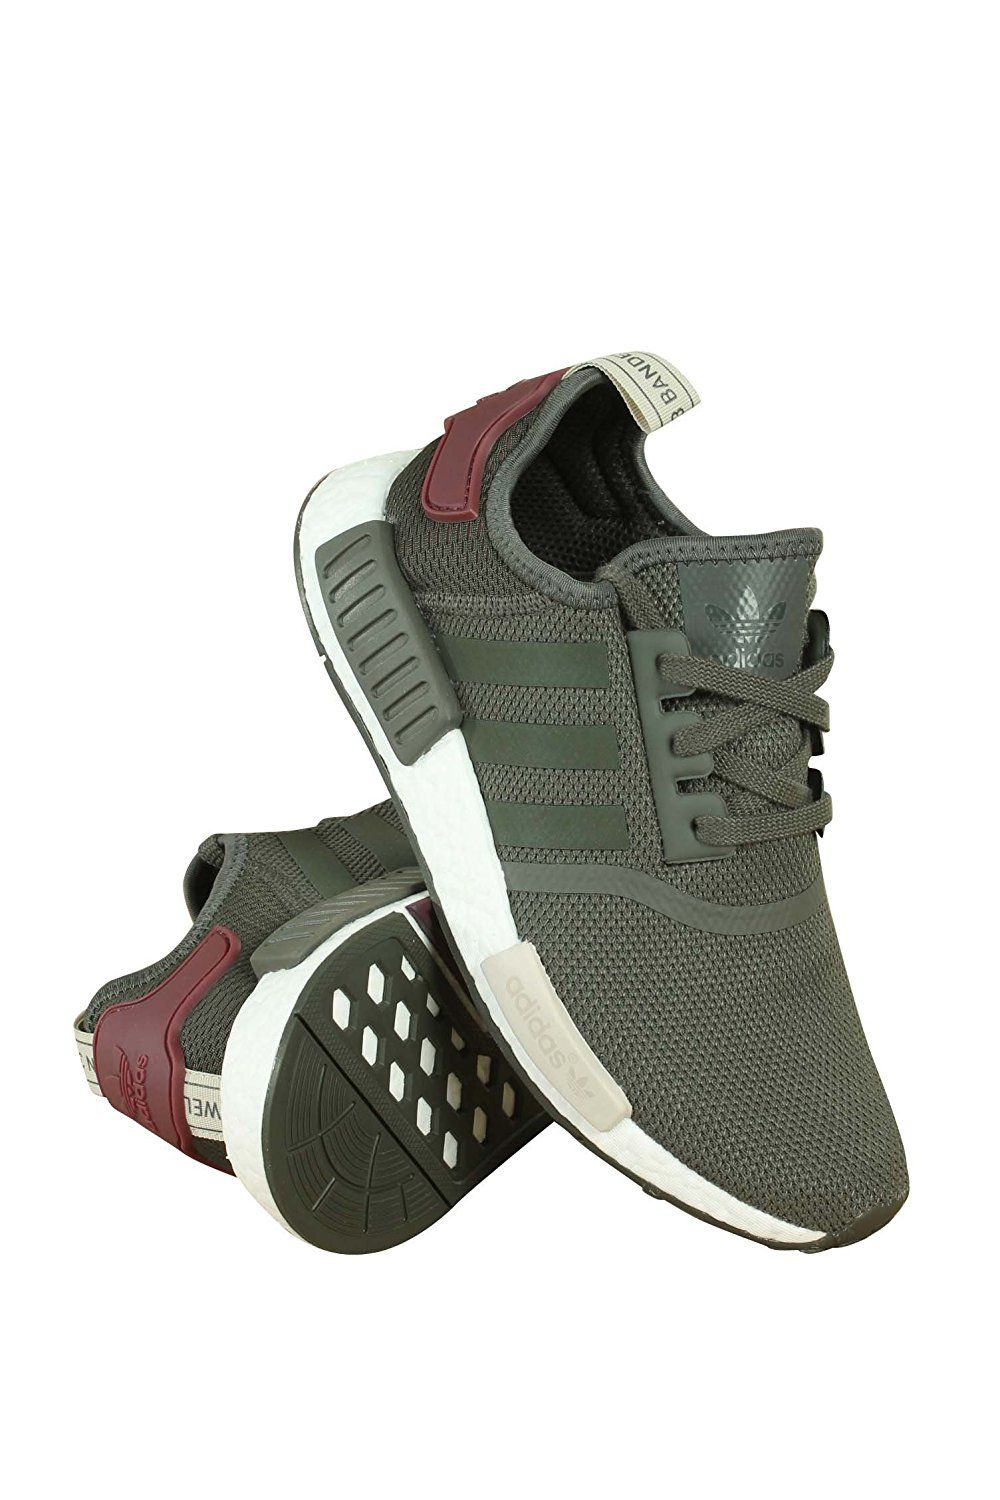 1b67632ad70cb Amazon.com | NMD R1 W Ladies in Utility Green/Maroon by Adidas, 8 ...